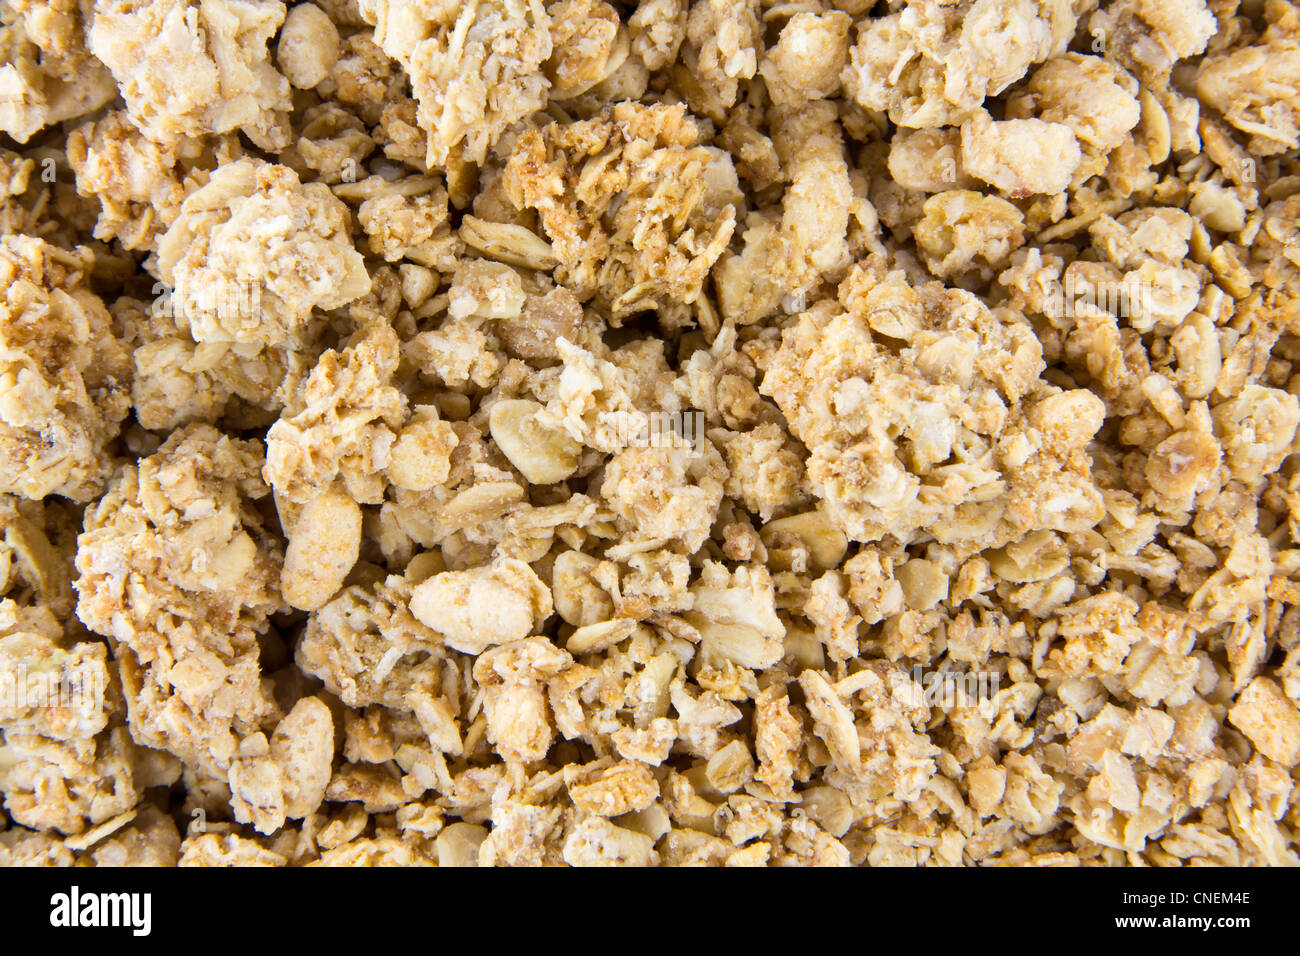 Müsli Crunchy Closeup Picture Of Crunchy Musli Mixed Together Stock Photo